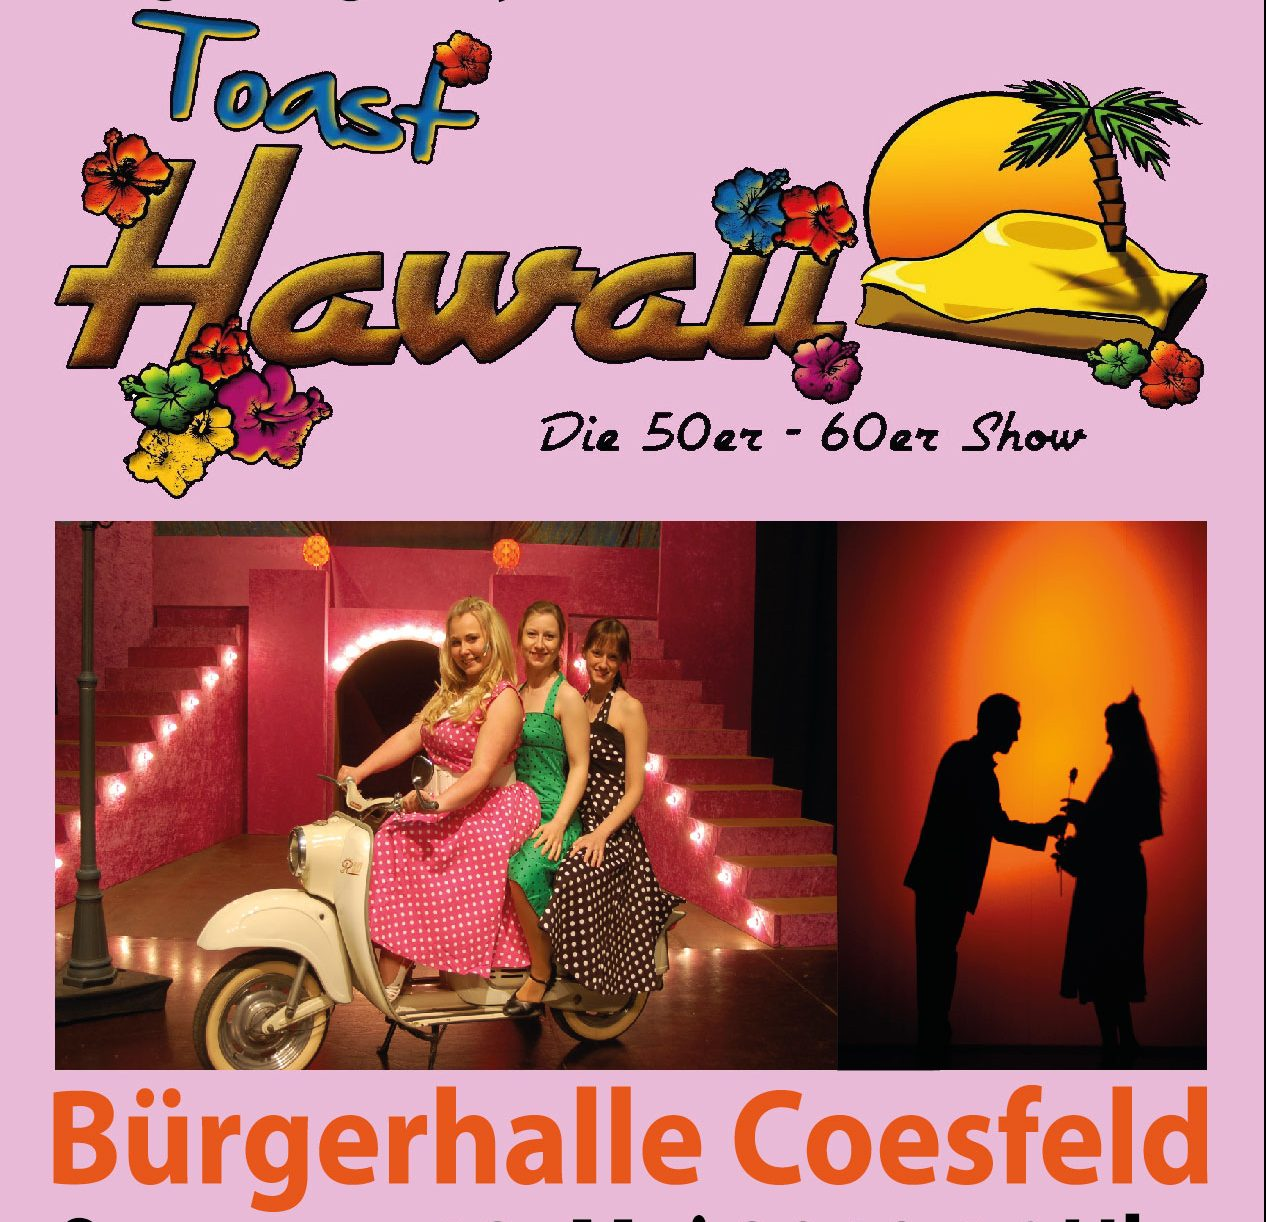 toast hawaii coesfeld theater an der niebuhrg. Black Bedroom Furniture Sets. Home Design Ideas